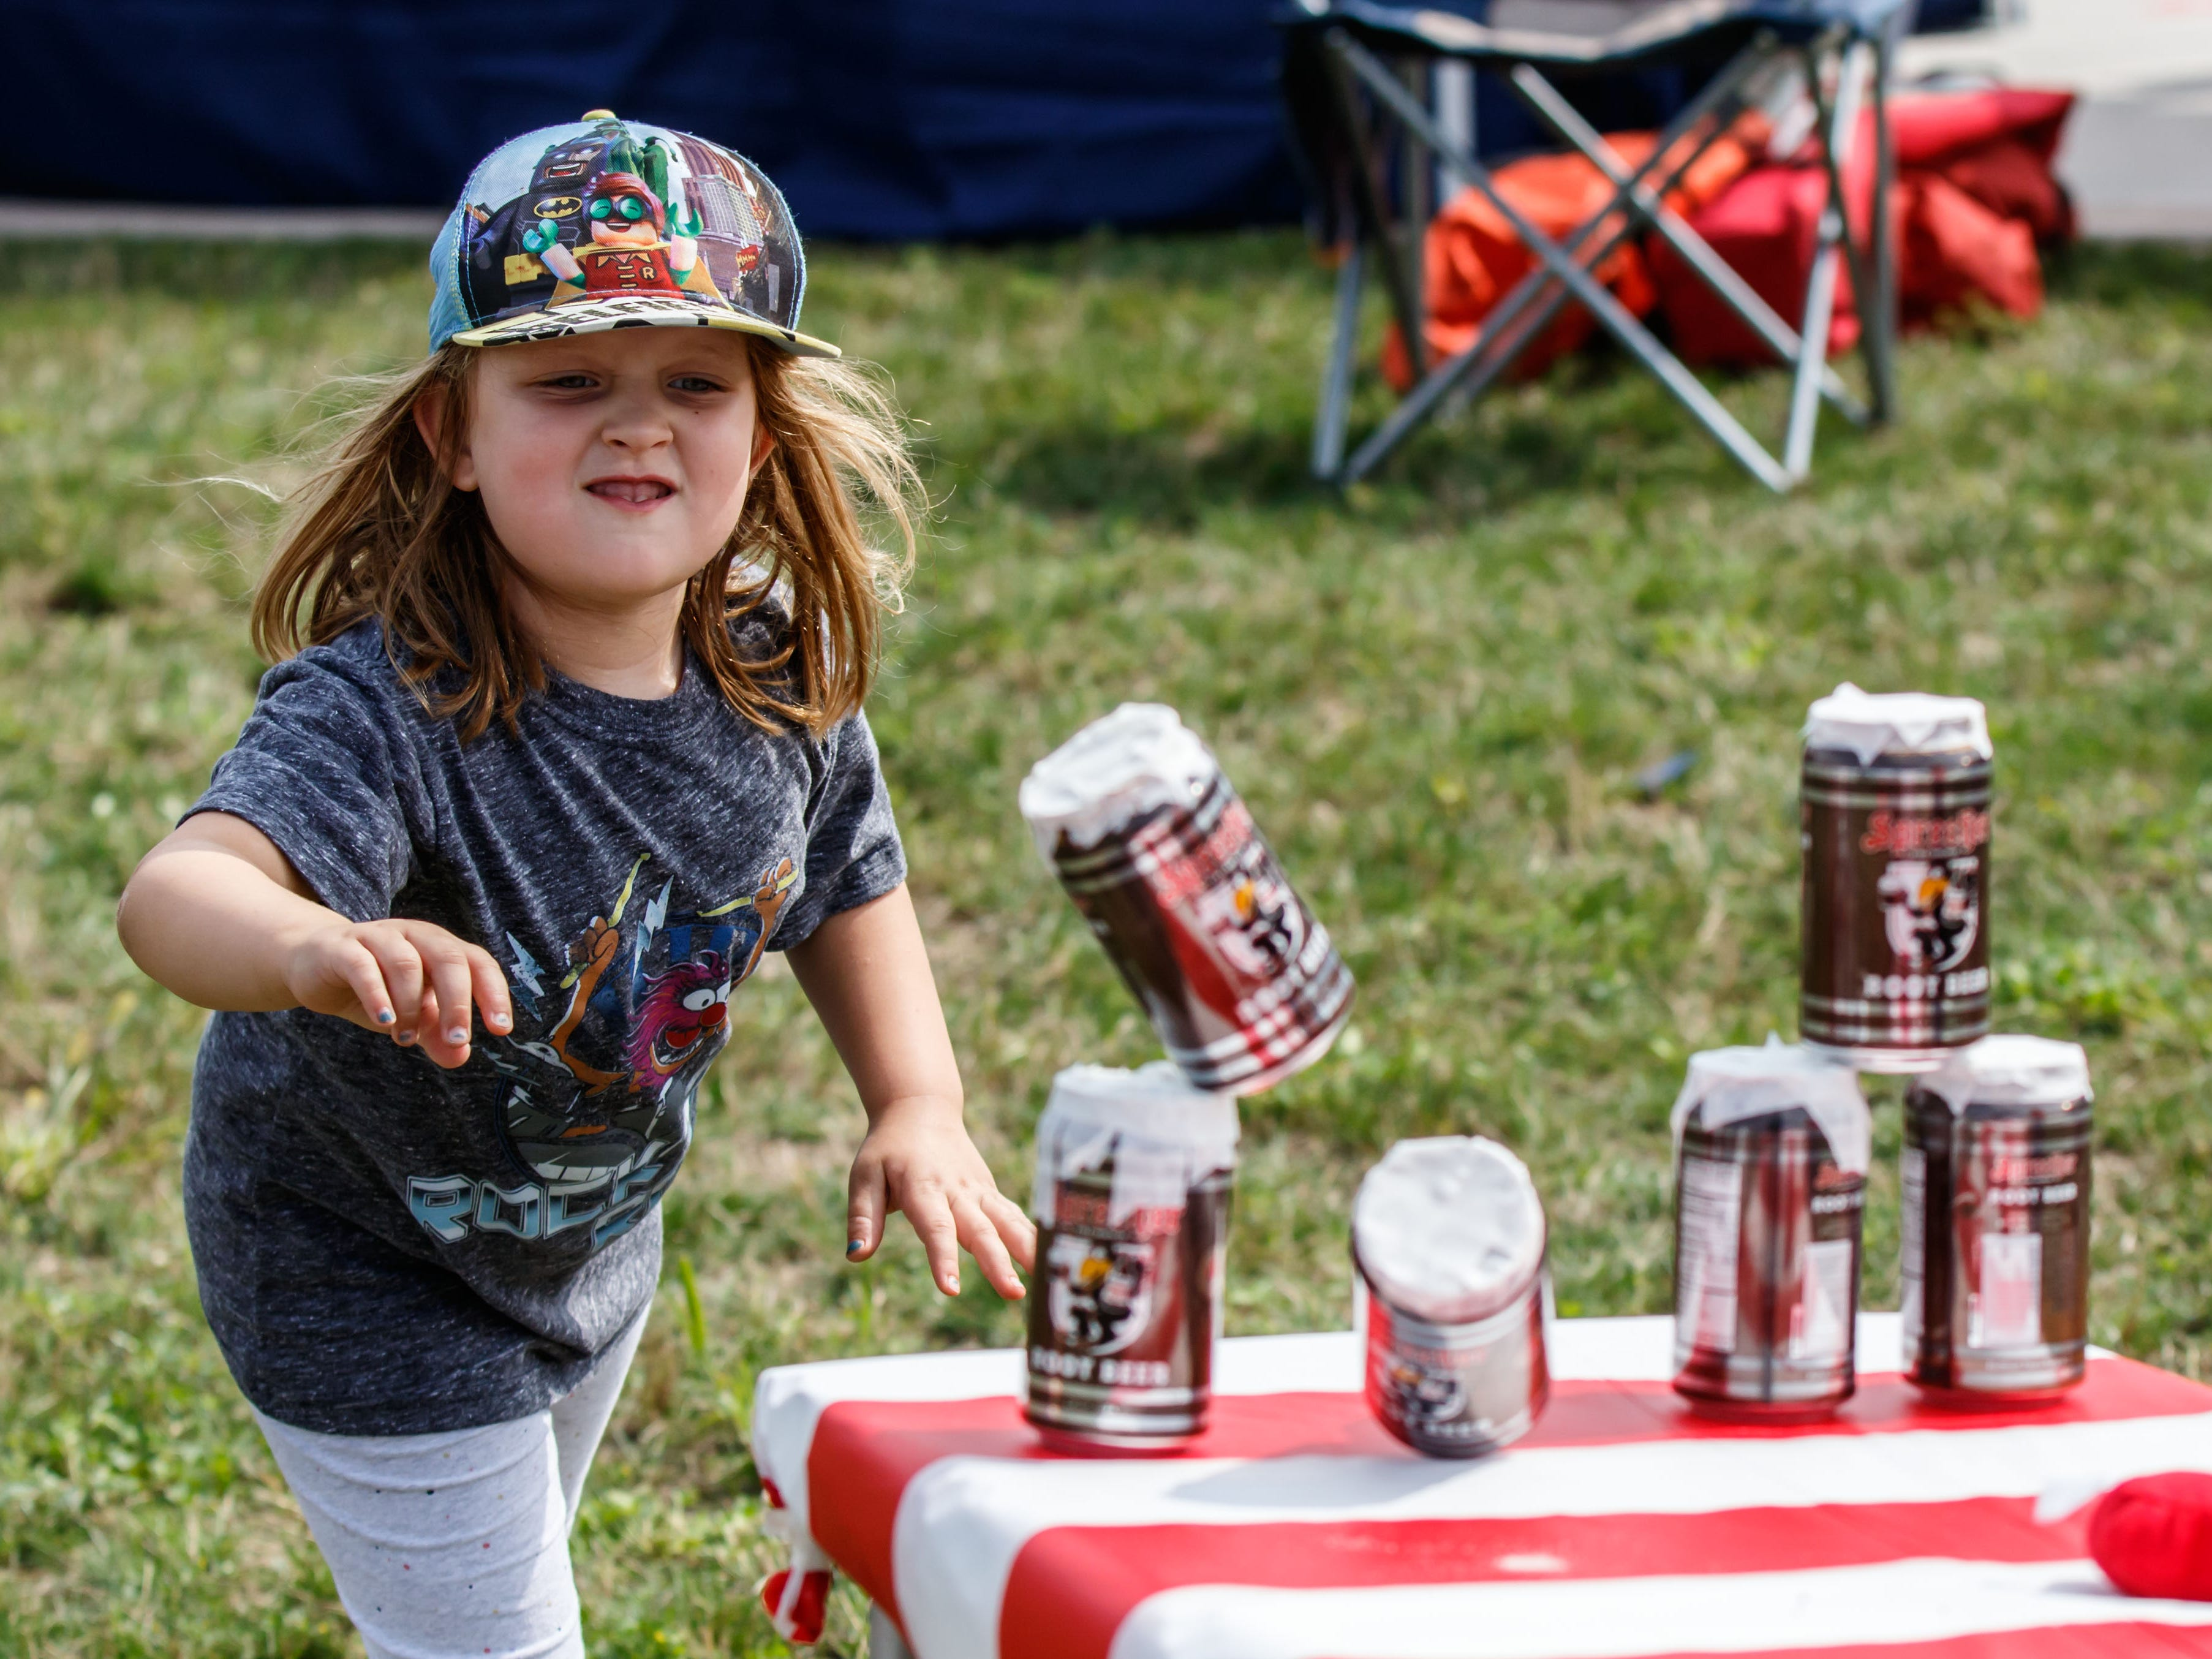 Four-year-old Emi Stuck of Glendale knocks over a stack of root beer cans during the second annual Root Beer Bash at Richard E. Maslowski Community Park in Glendale on Saturday, August 25, 2018. The free event, hosted by the City of Glendale and Sprecher Brewing Company, features root beer themed food, games, live music and more.